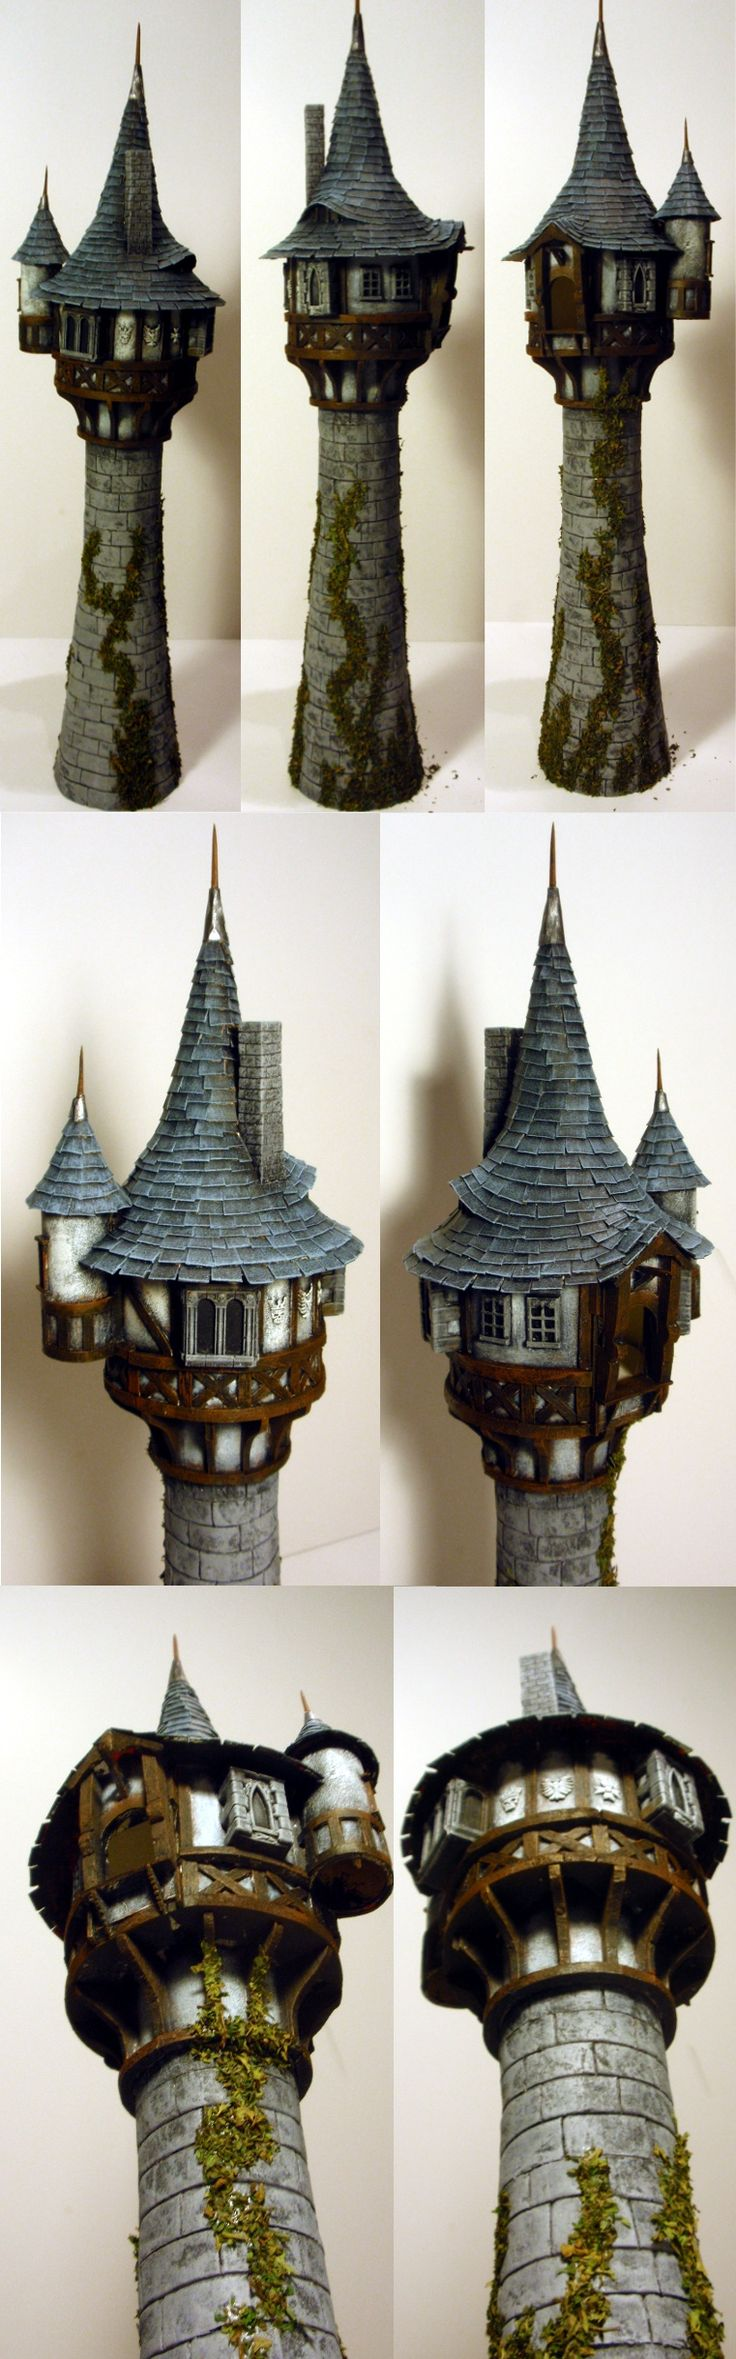 Tangled Tower by shadowwolf. I love the eyebrow window on the roof!